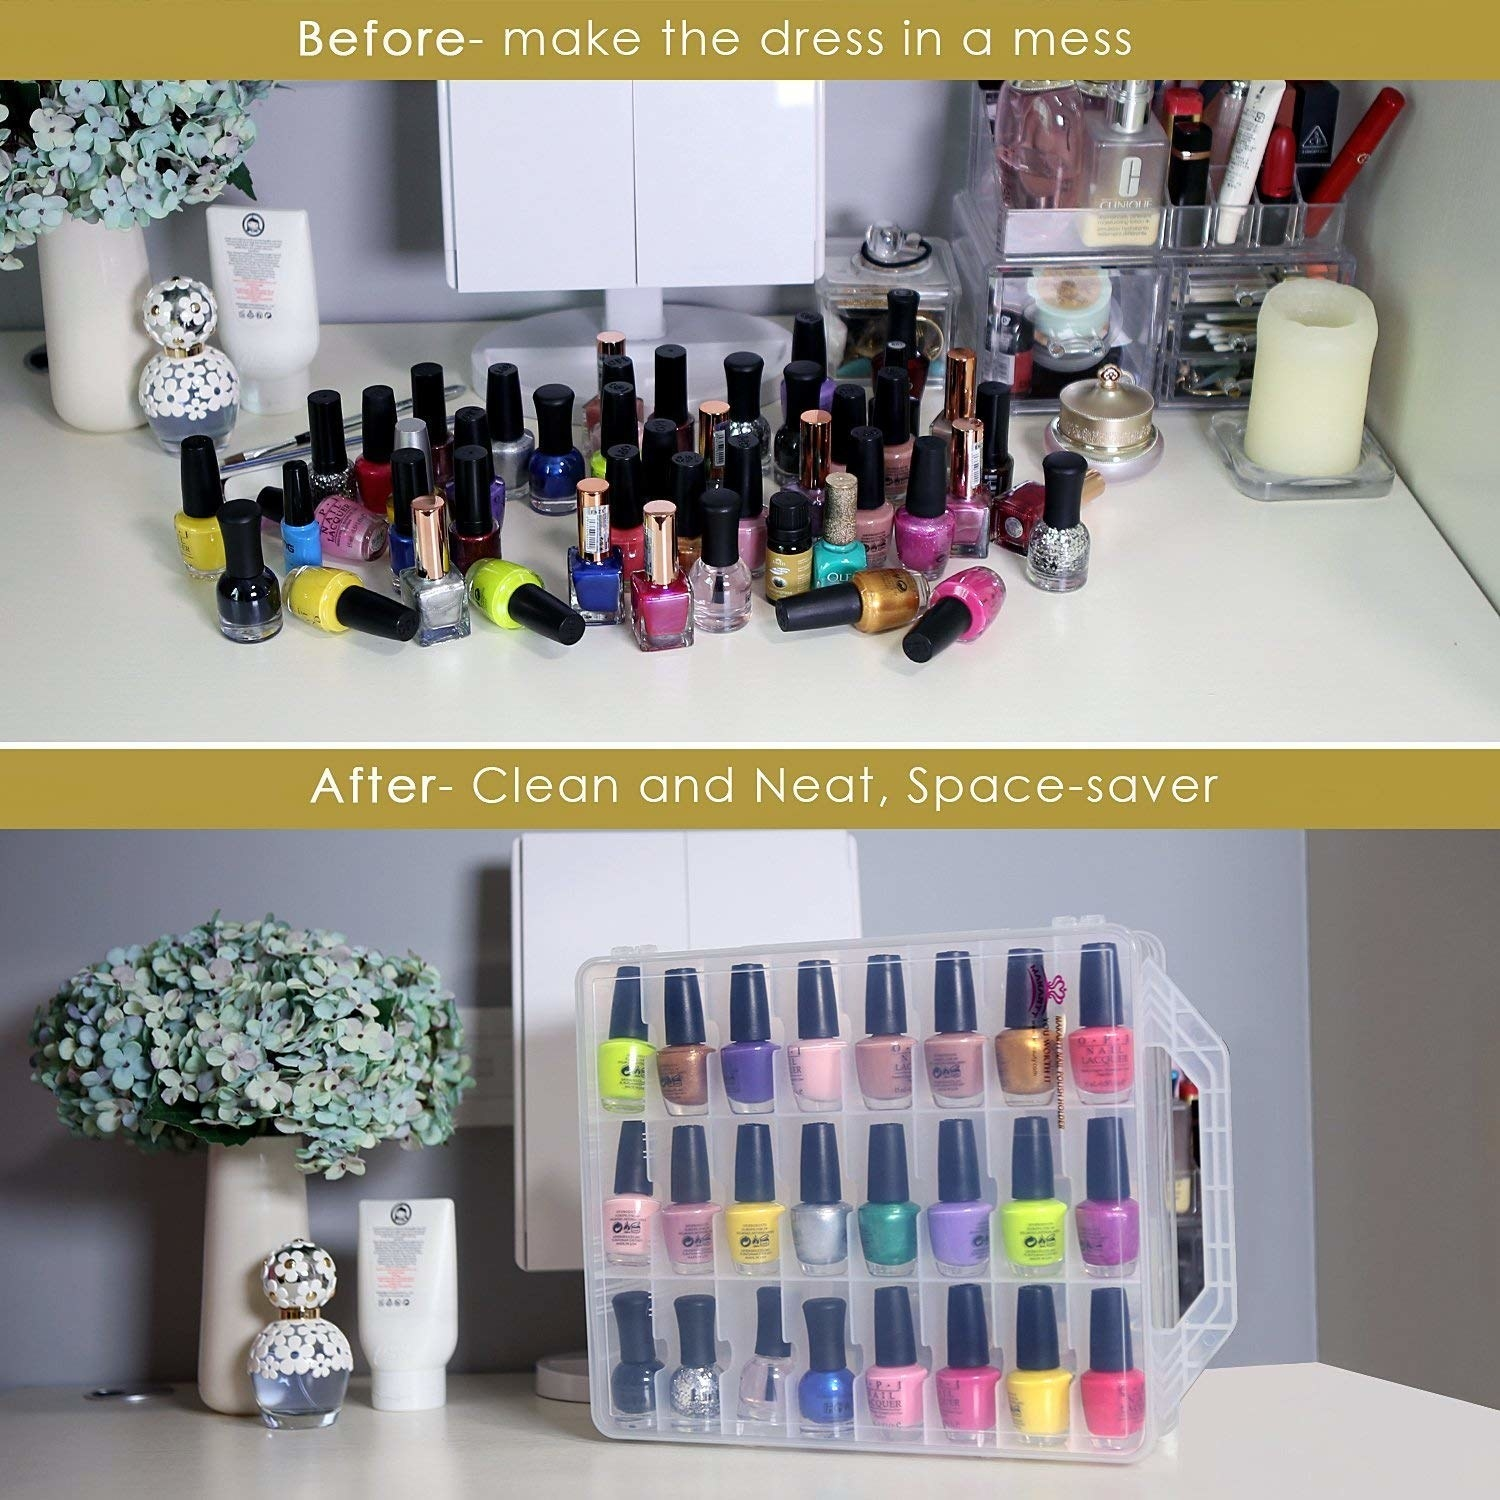 A before and after pic of multiple nail polish bottles laid out and then organized in the case.